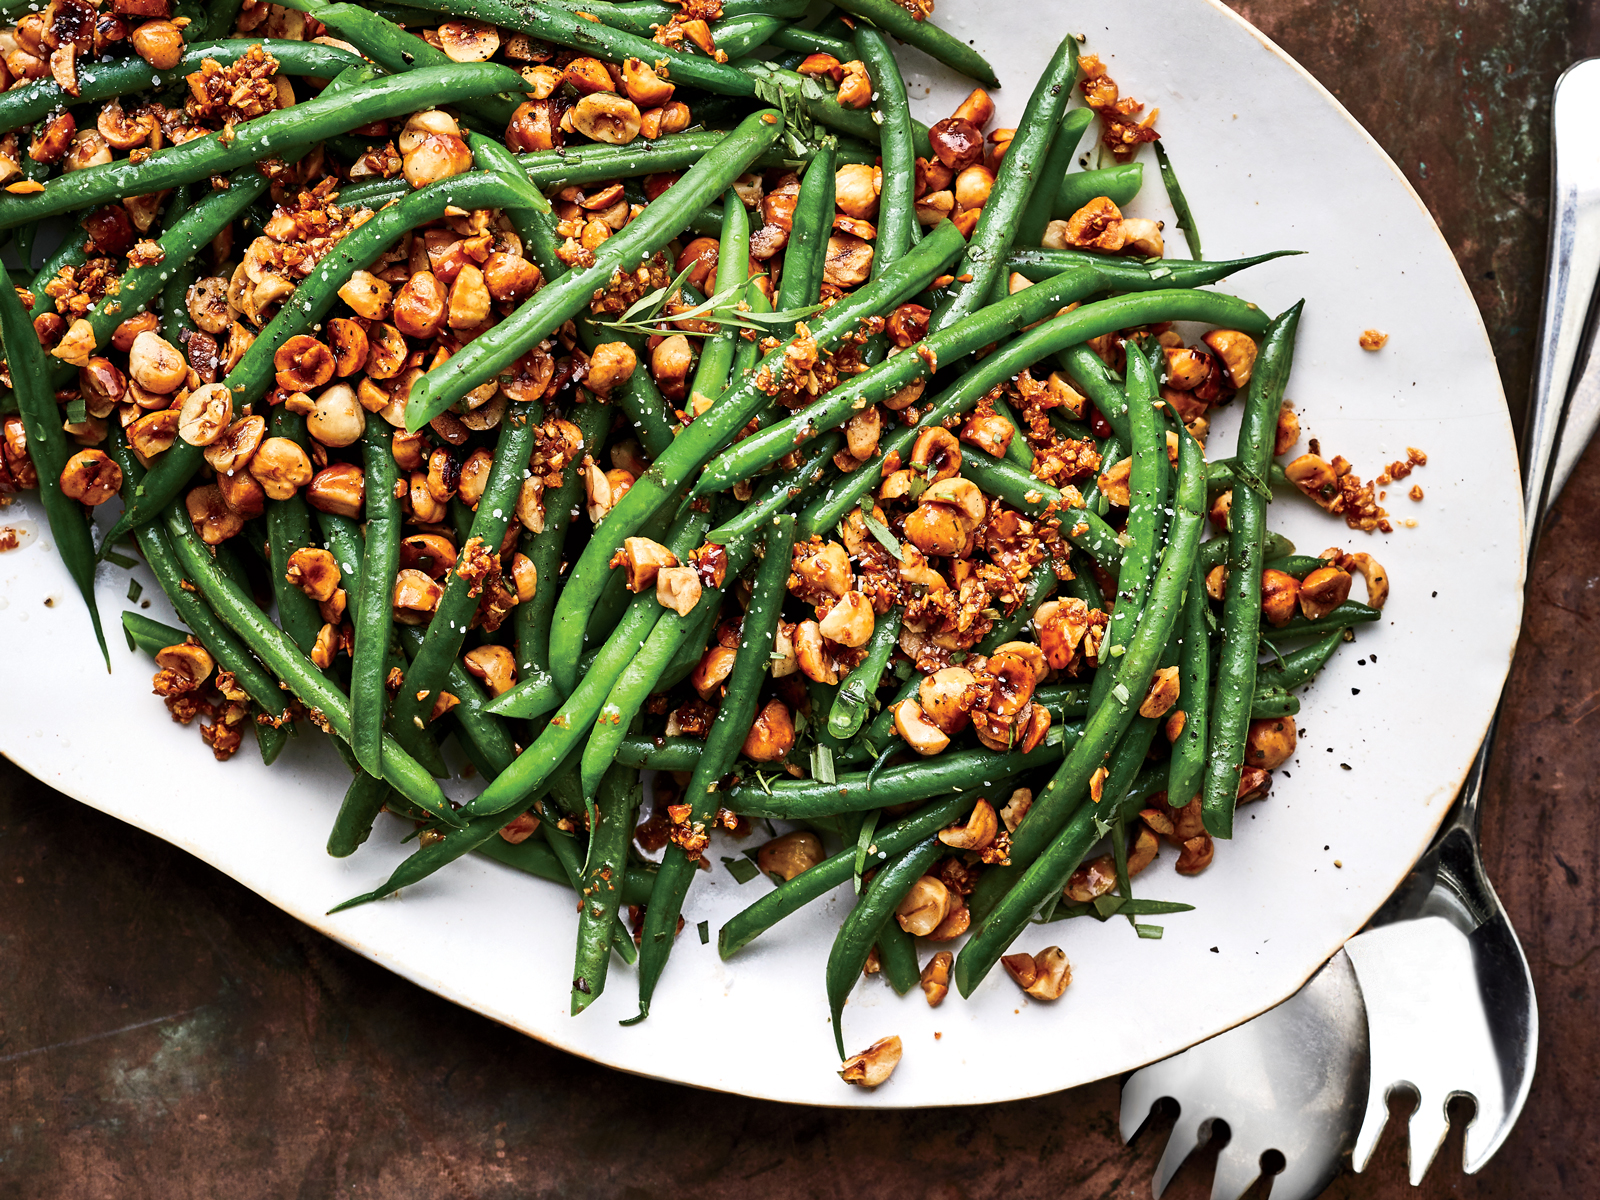 Garlicky Haricots Verts with Hazelnuts Recipe